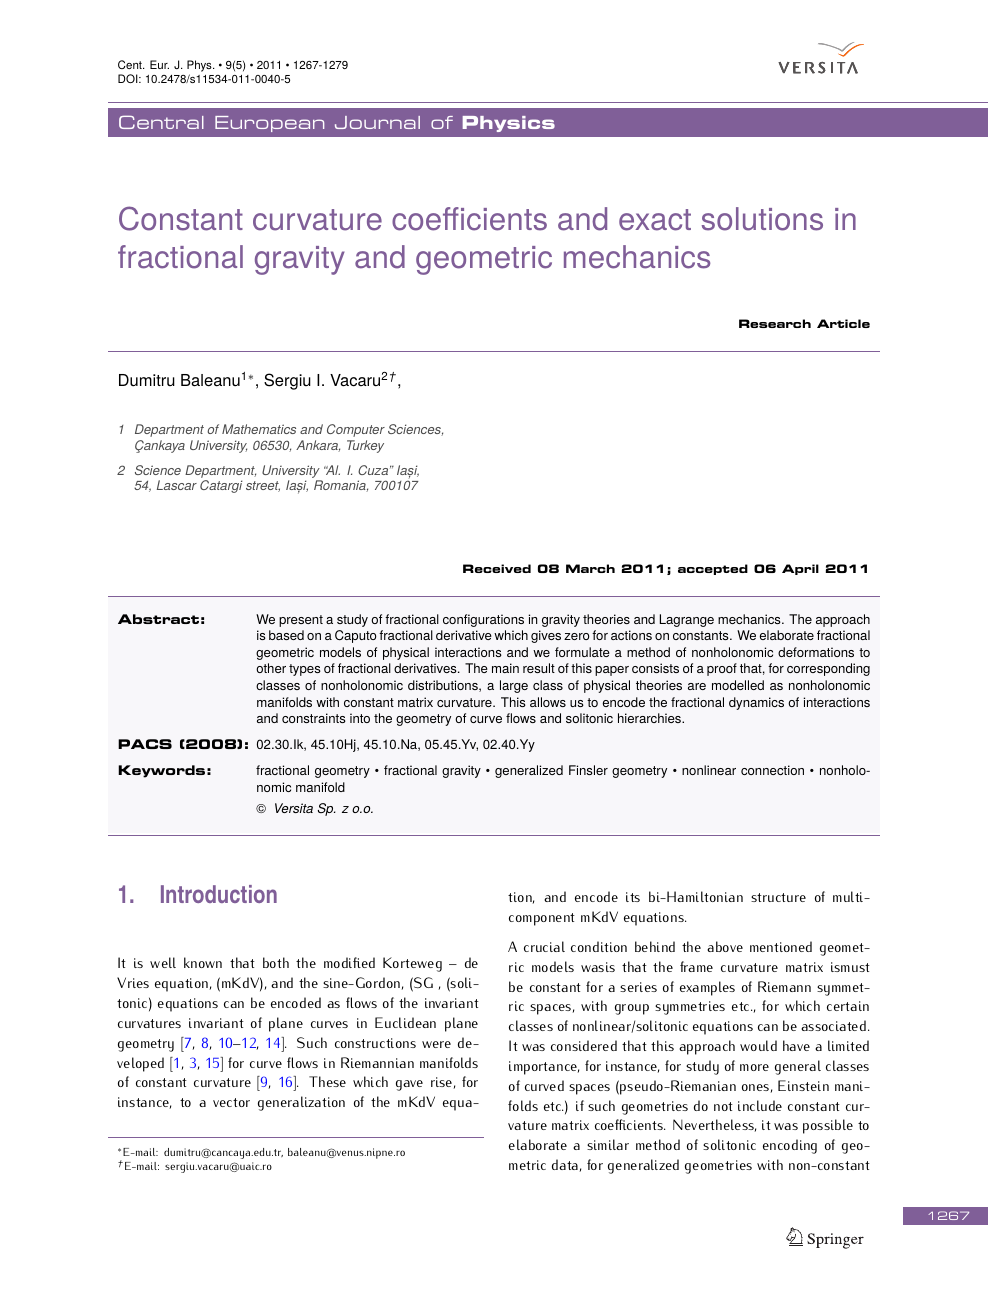 Constant curvature coefficients and exact solutions in